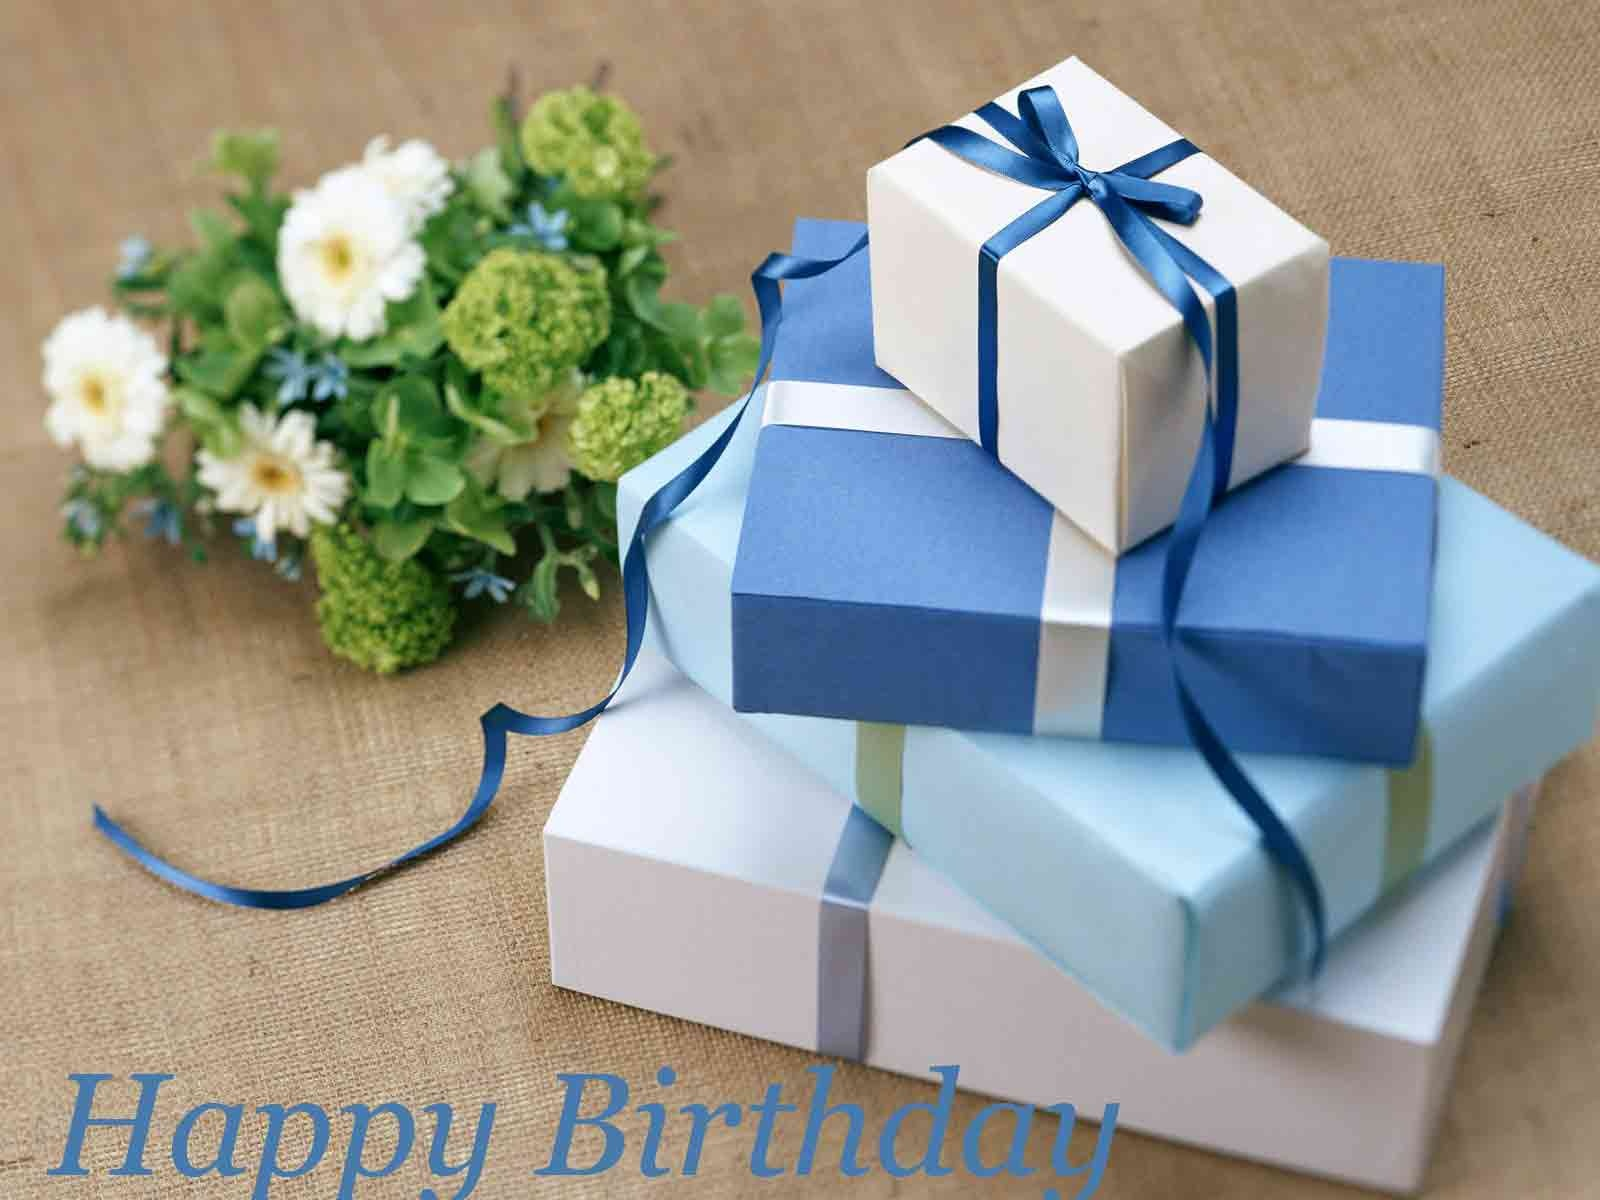 Lovely and Beautiful Birthday Wishes to Make Your Girlfriend Happy on Her Birthday 3